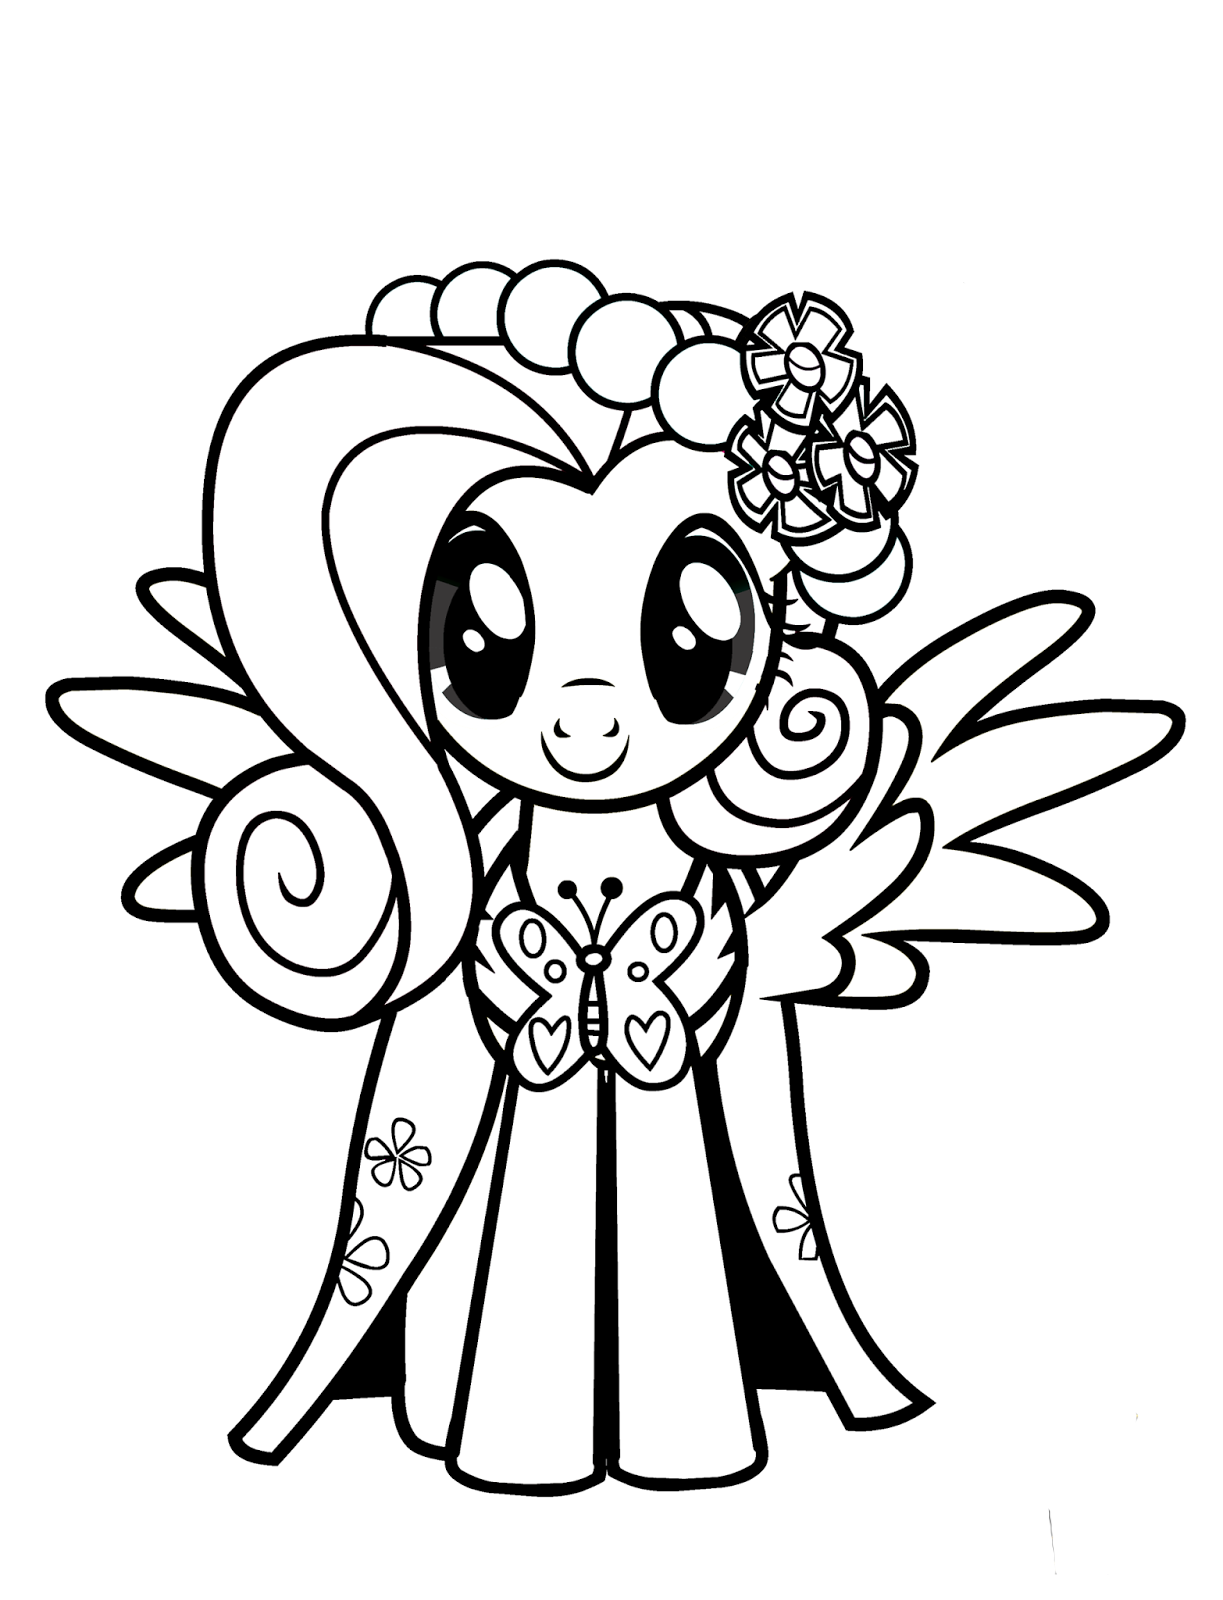 Fluttershy coloring pages best coloring pages for kids for Coloring pages